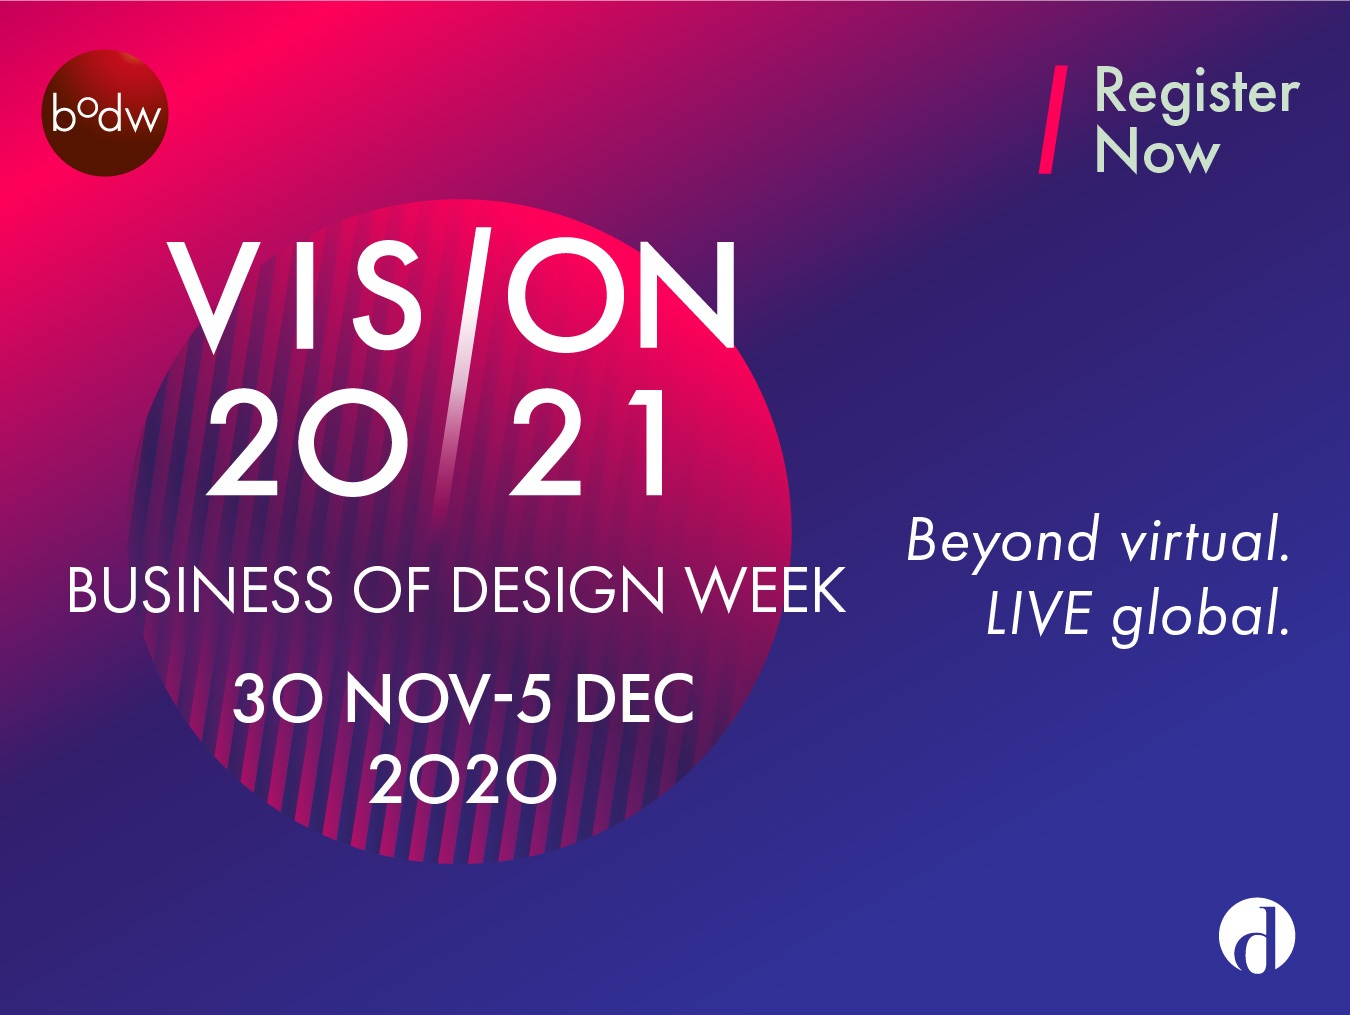 """VISION 20/21"" – Finding Clarity in Uncertainty at Business of Design Week (BODW) 2020"